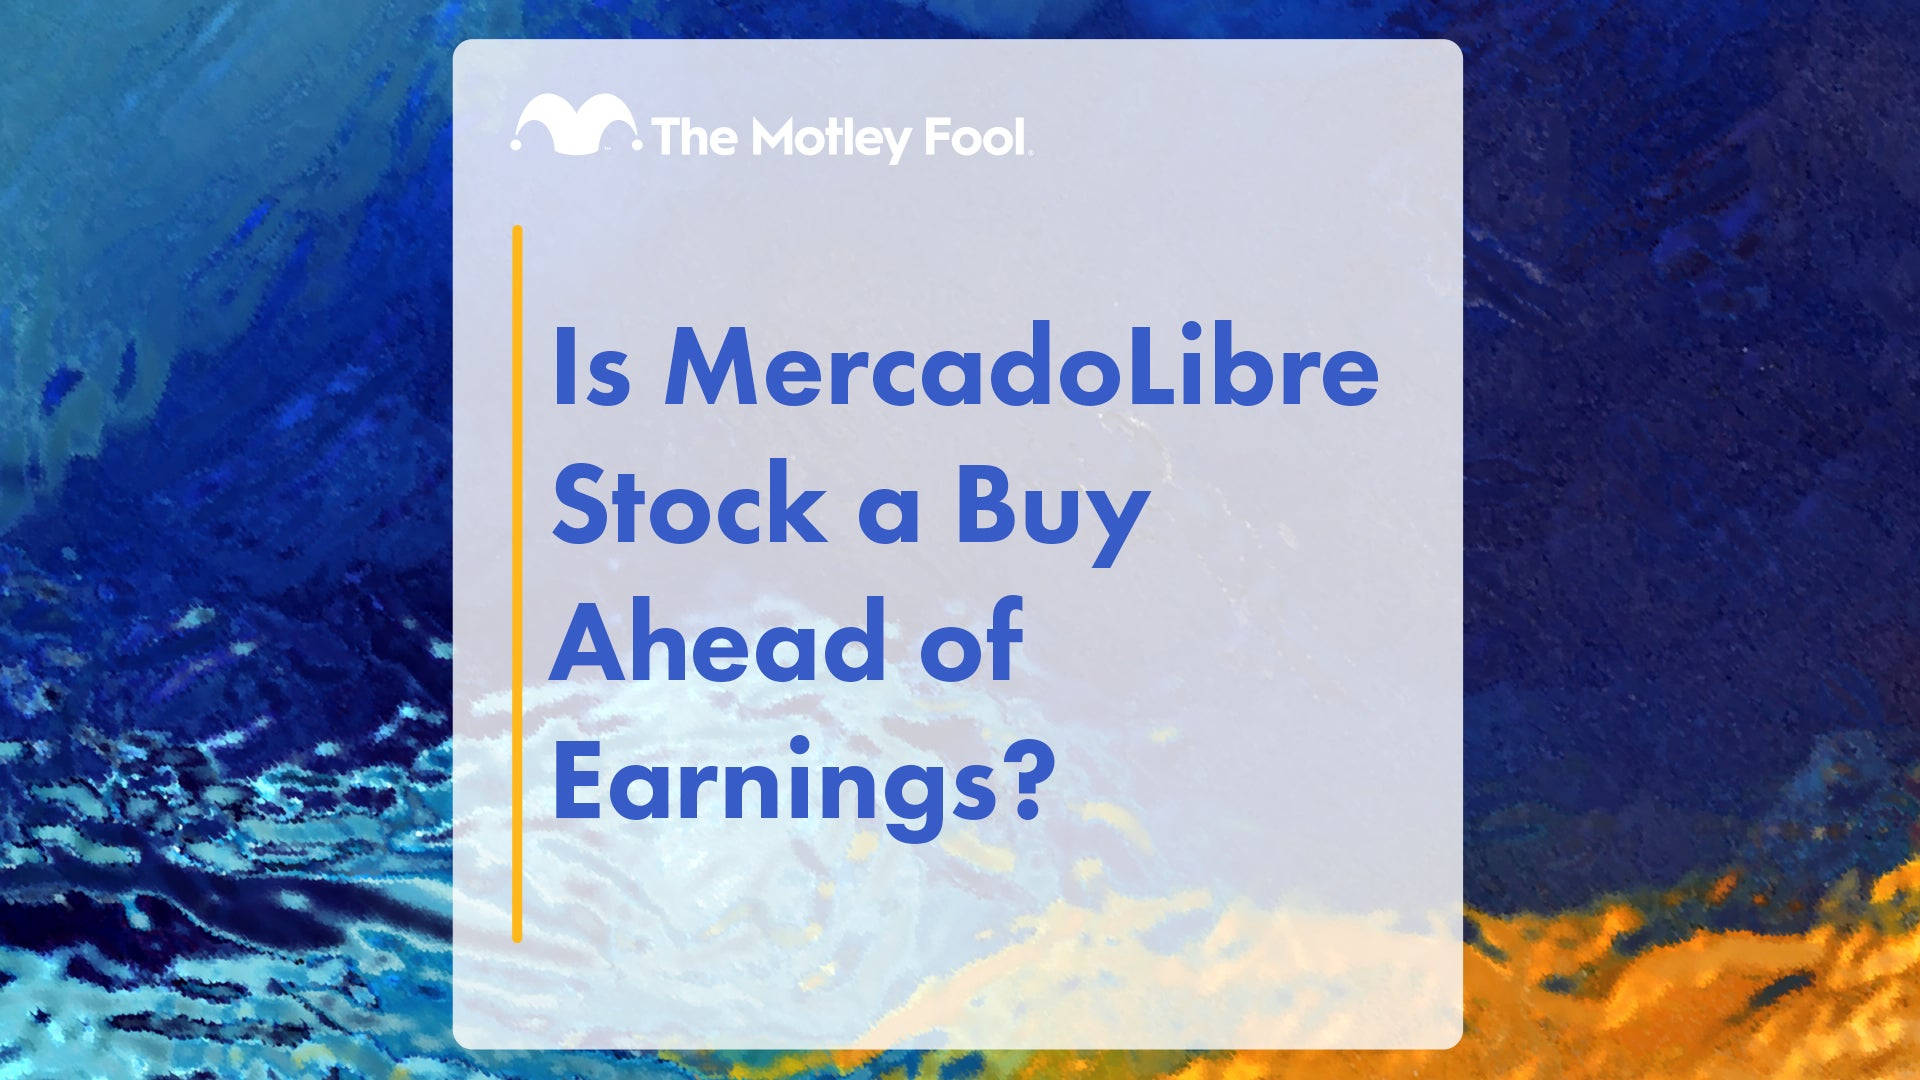 Is MercadoLibre Stock a Buy Ahead of Earnings?